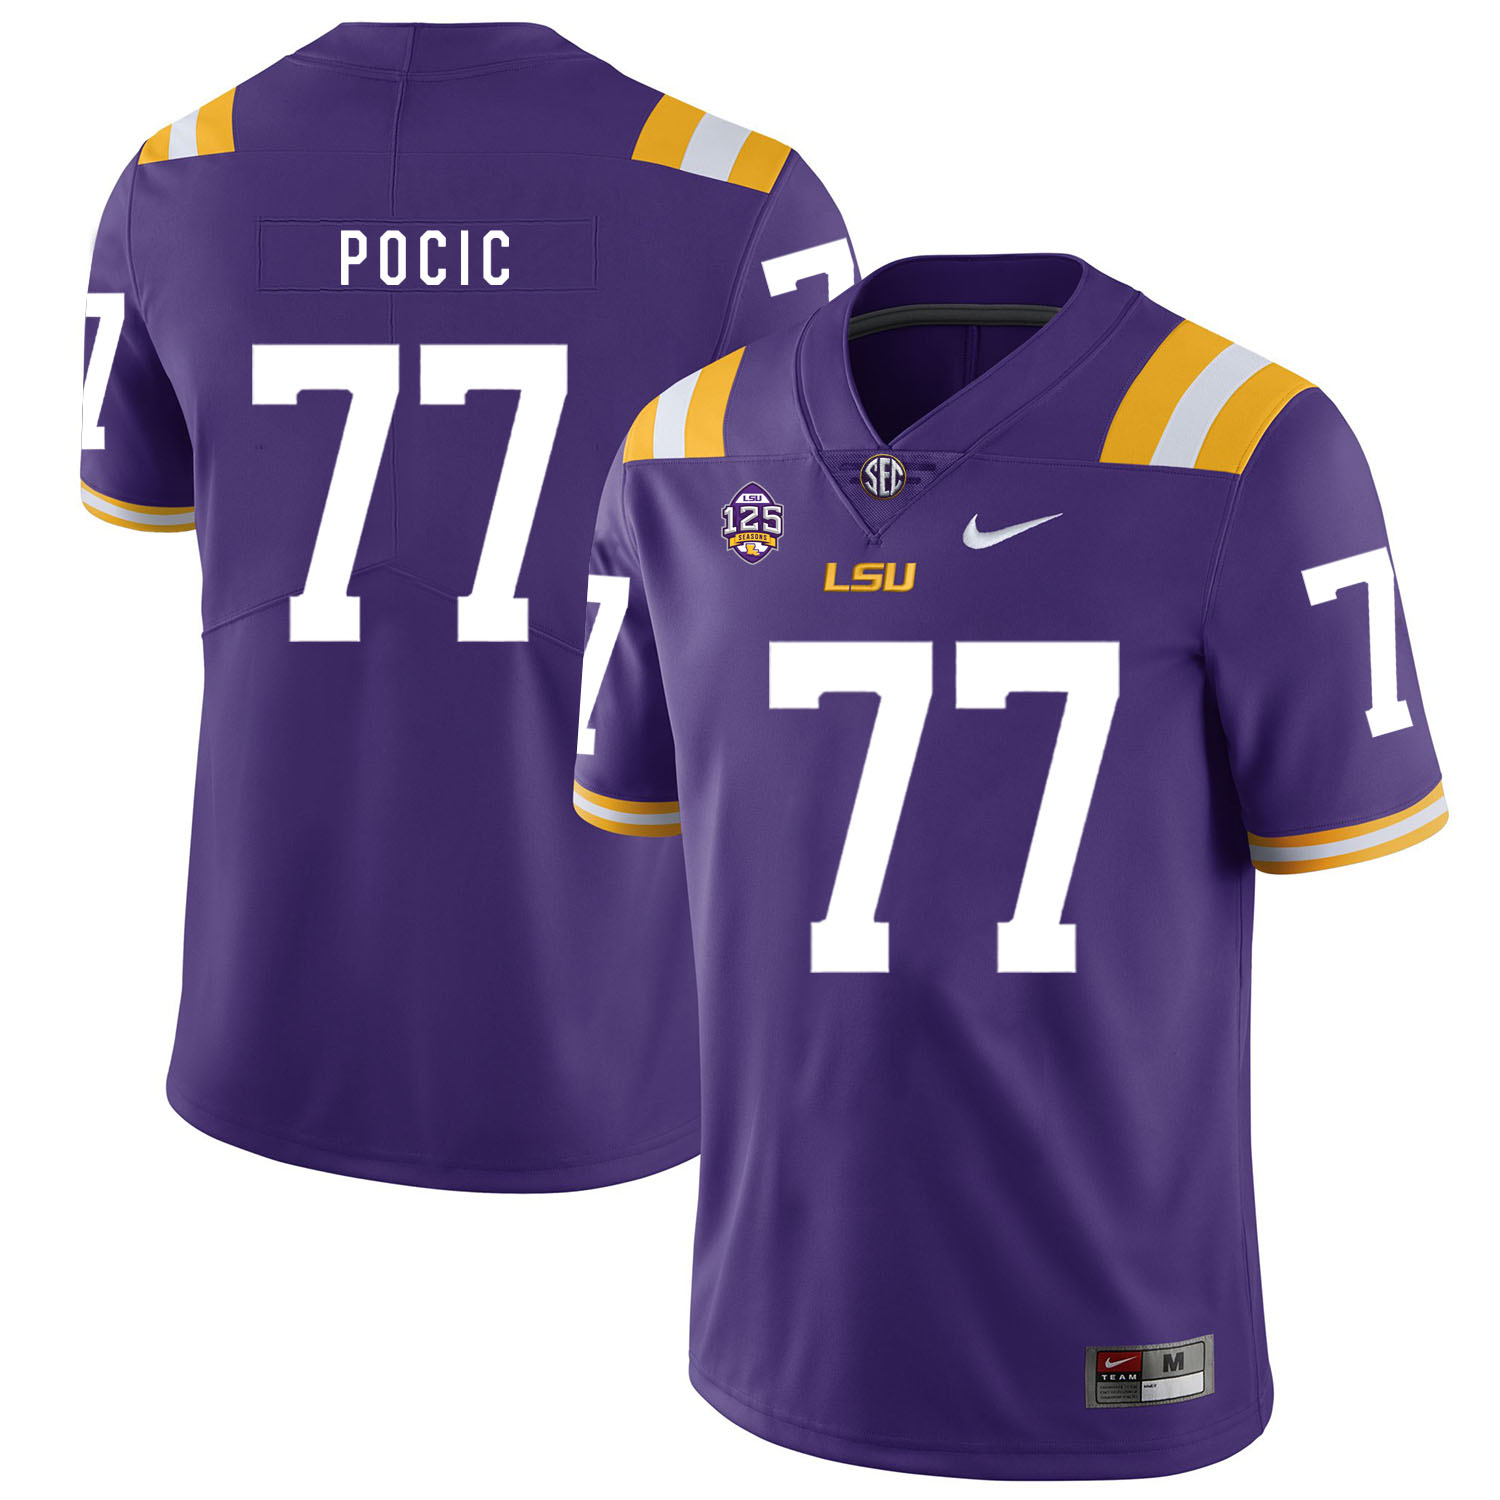 LSU Tigers 77 Ethan Pocic Purple Nike College Football Jersey